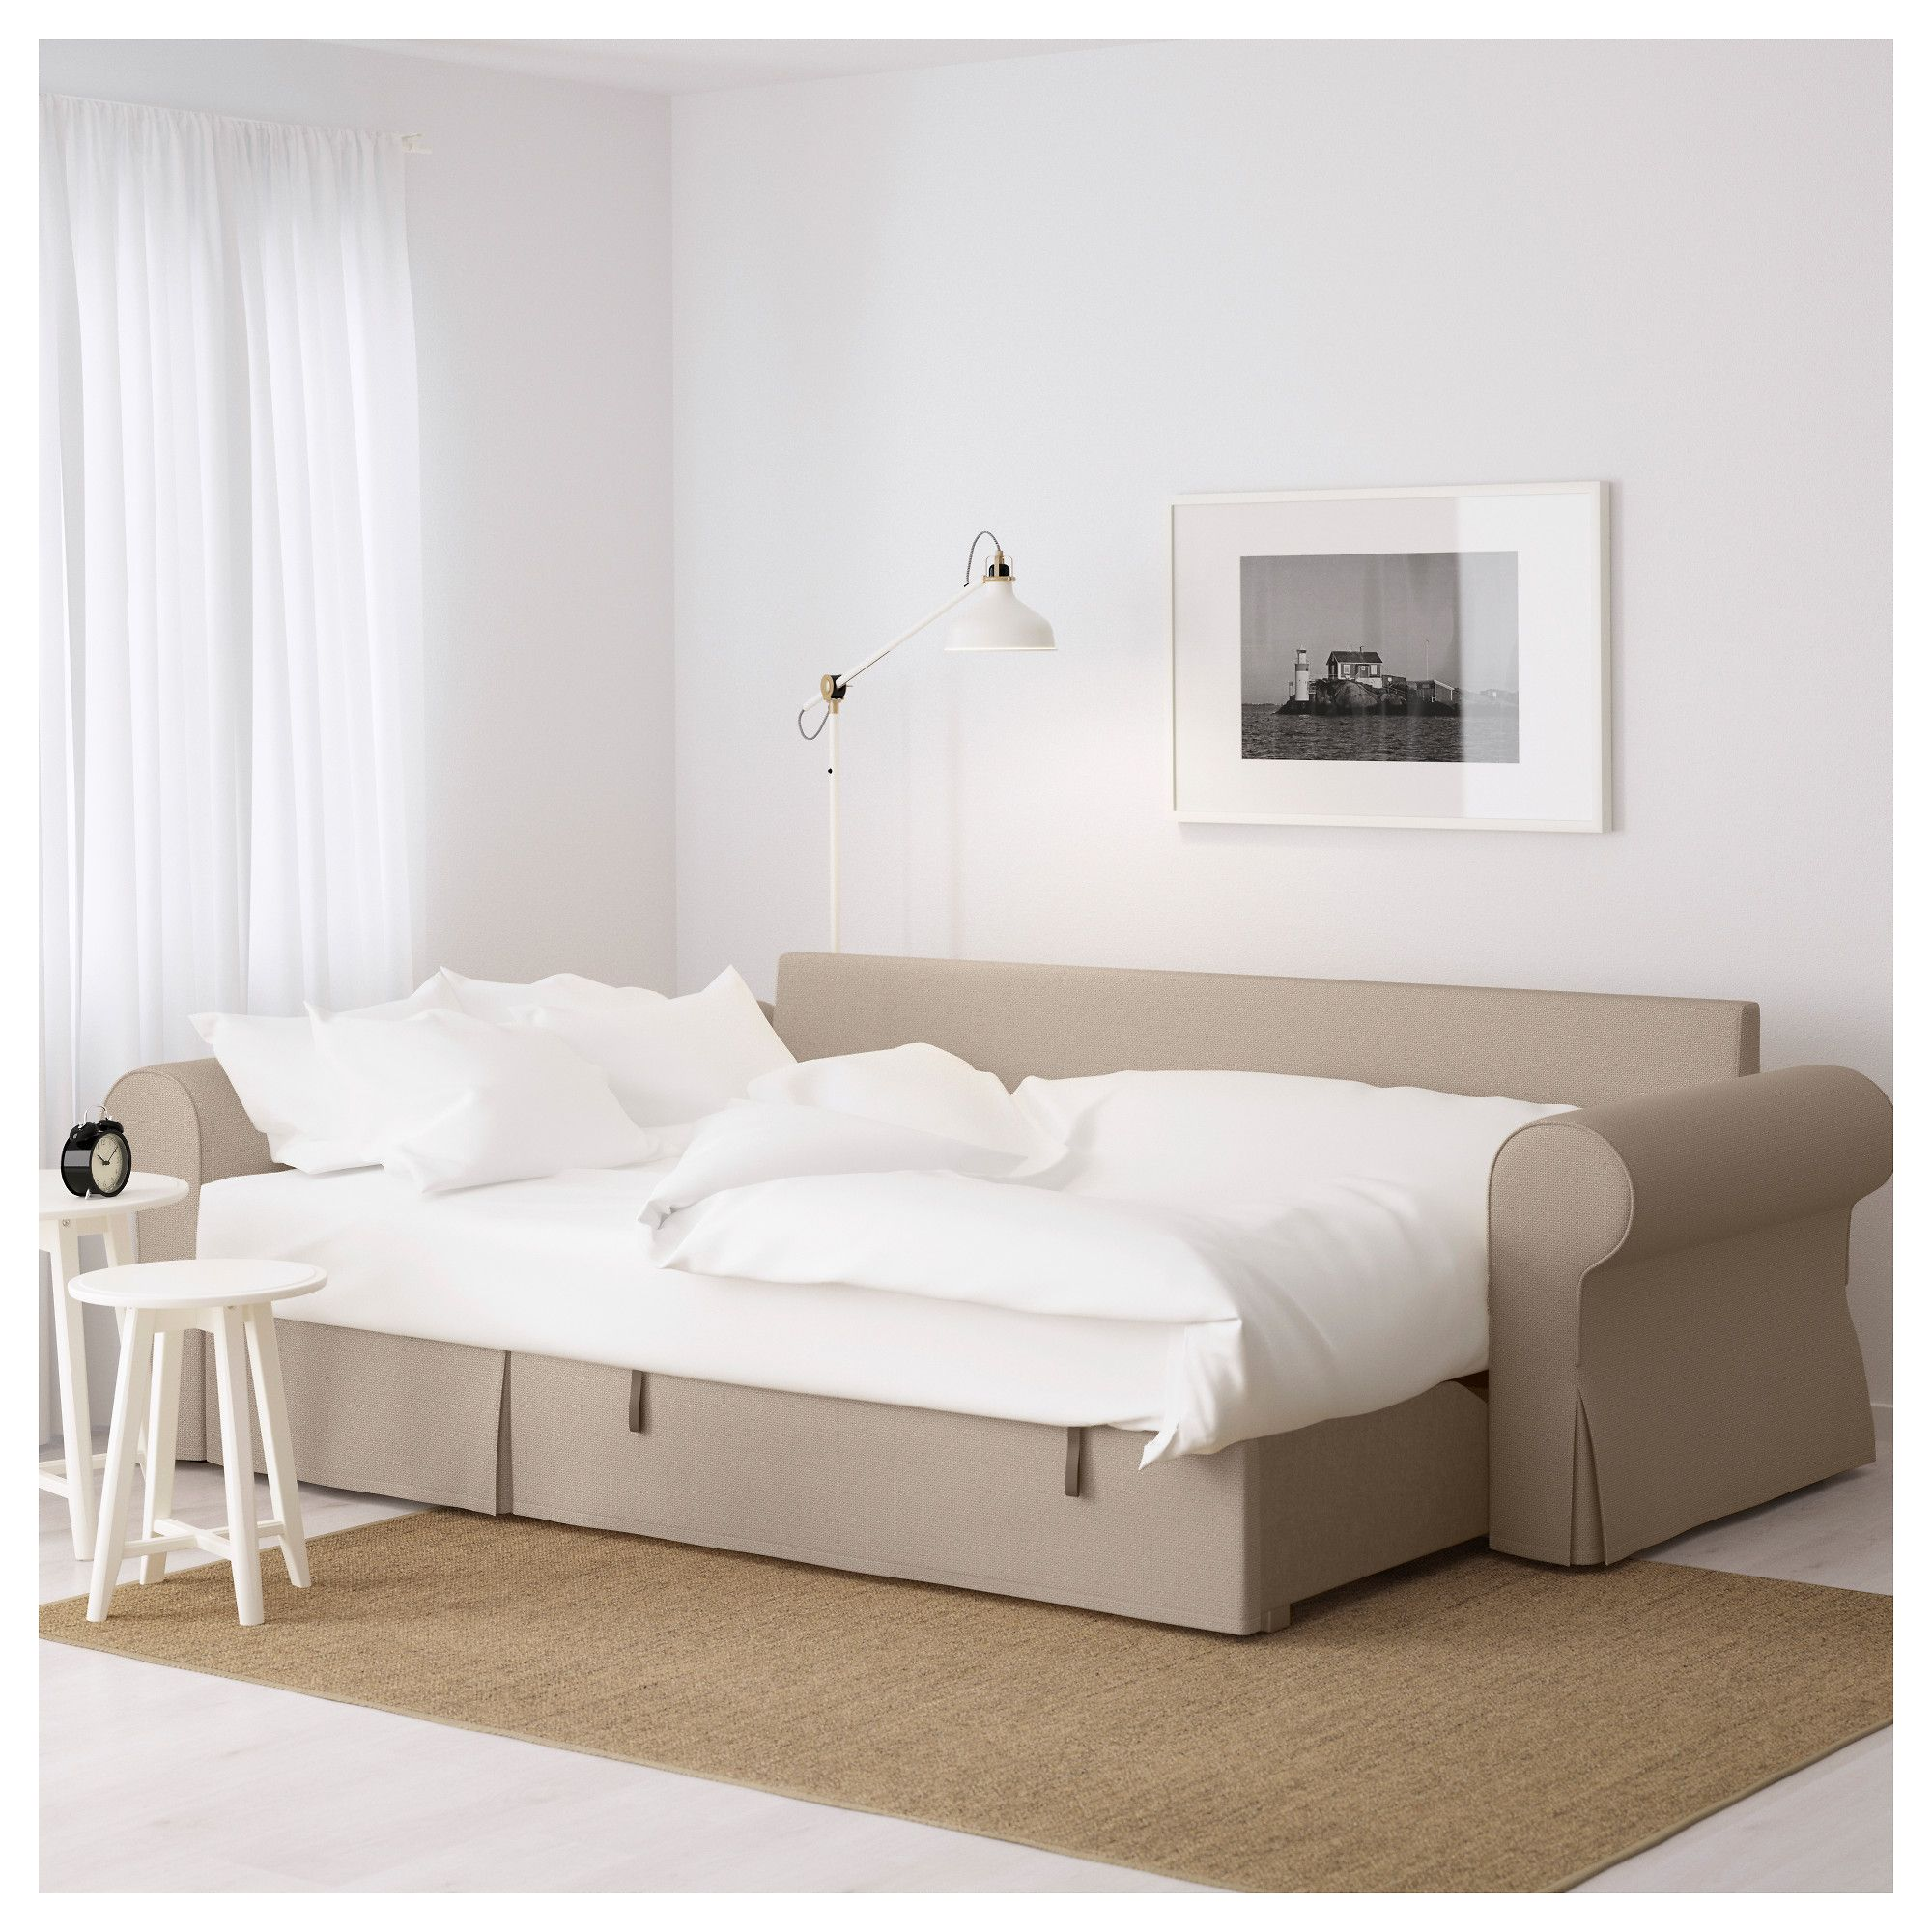 Backabro sofa bed with chaise longue hylte beige beige for Chaise longue bed